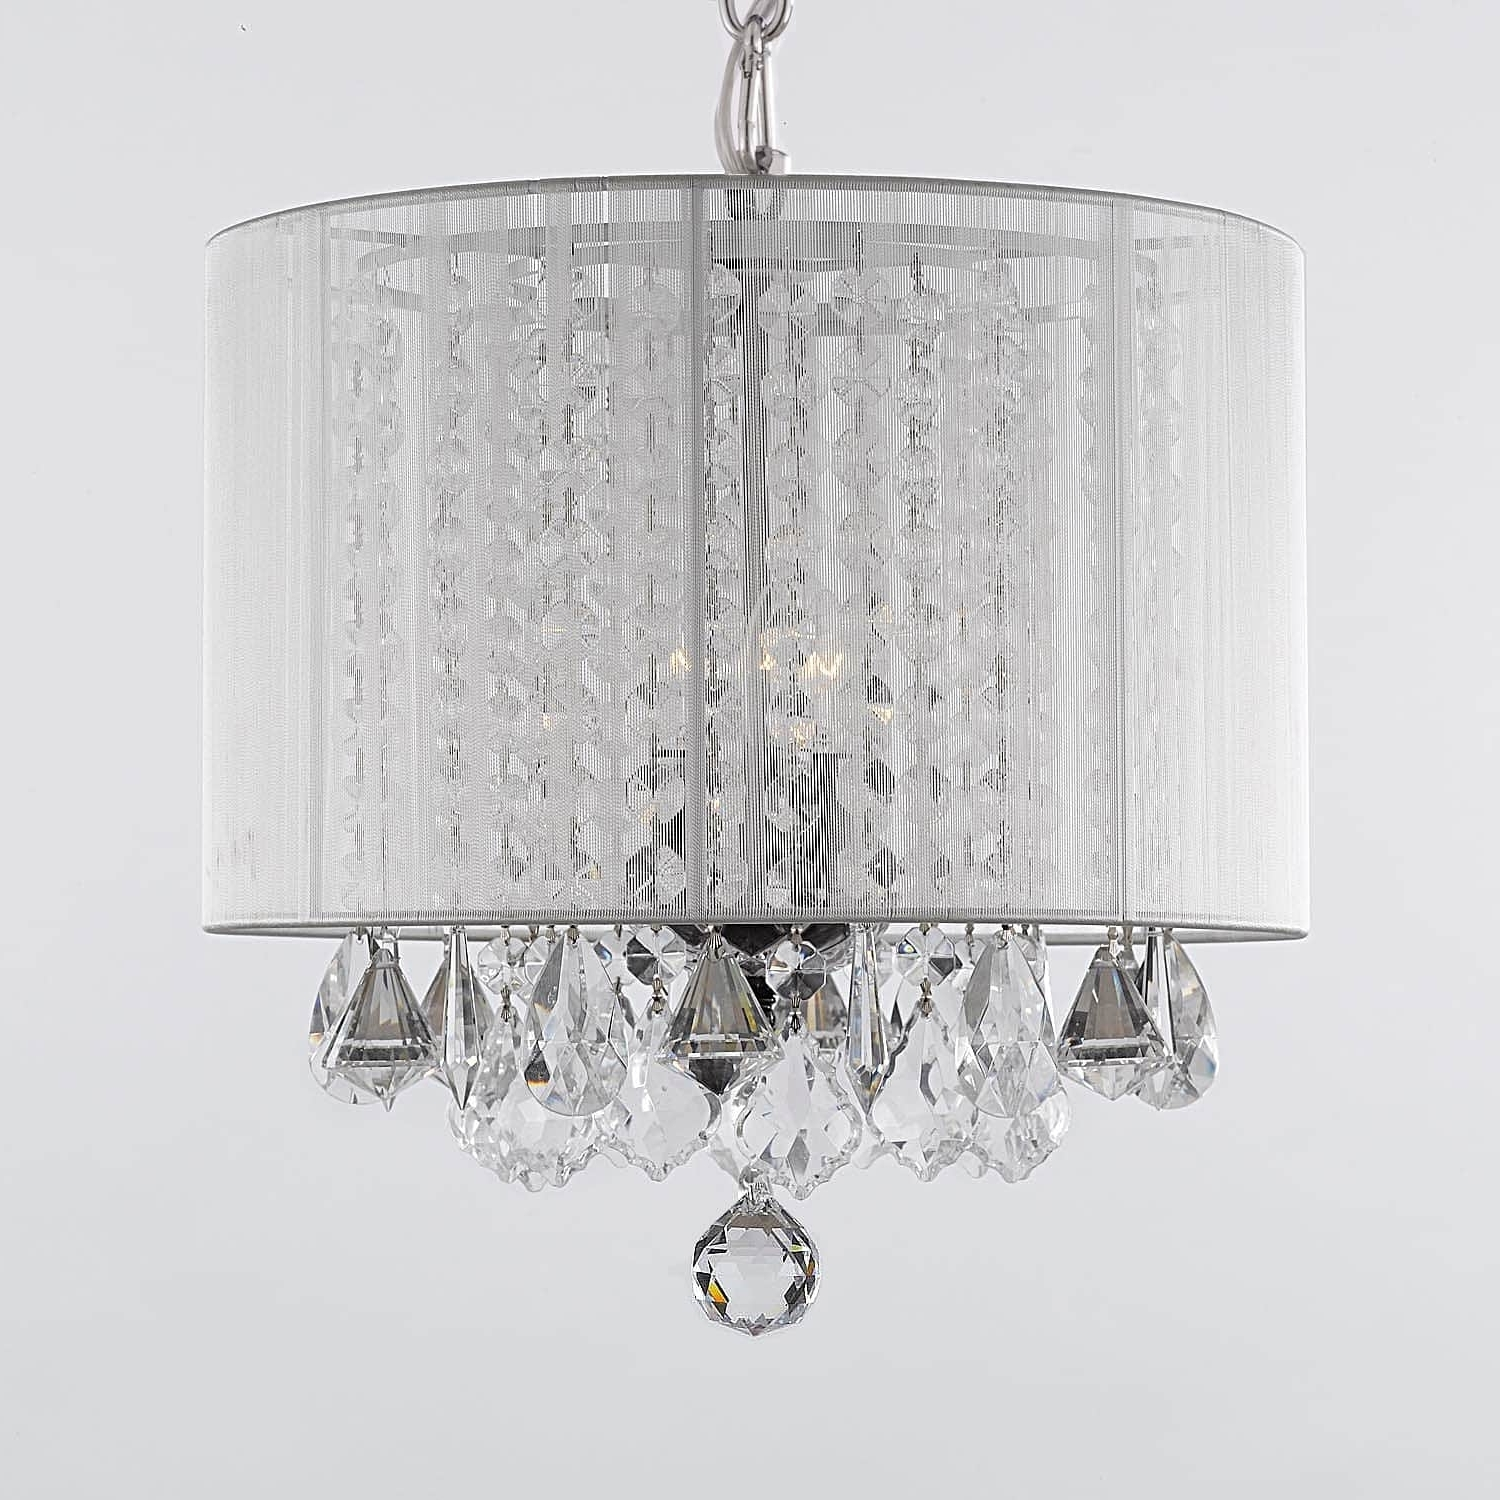 Most Current Gallery 3 Light Crystal Chandelier With Shade – Free Shipping Today Pertaining To Crystal Chandeliers With Shades (View 12 of 20)